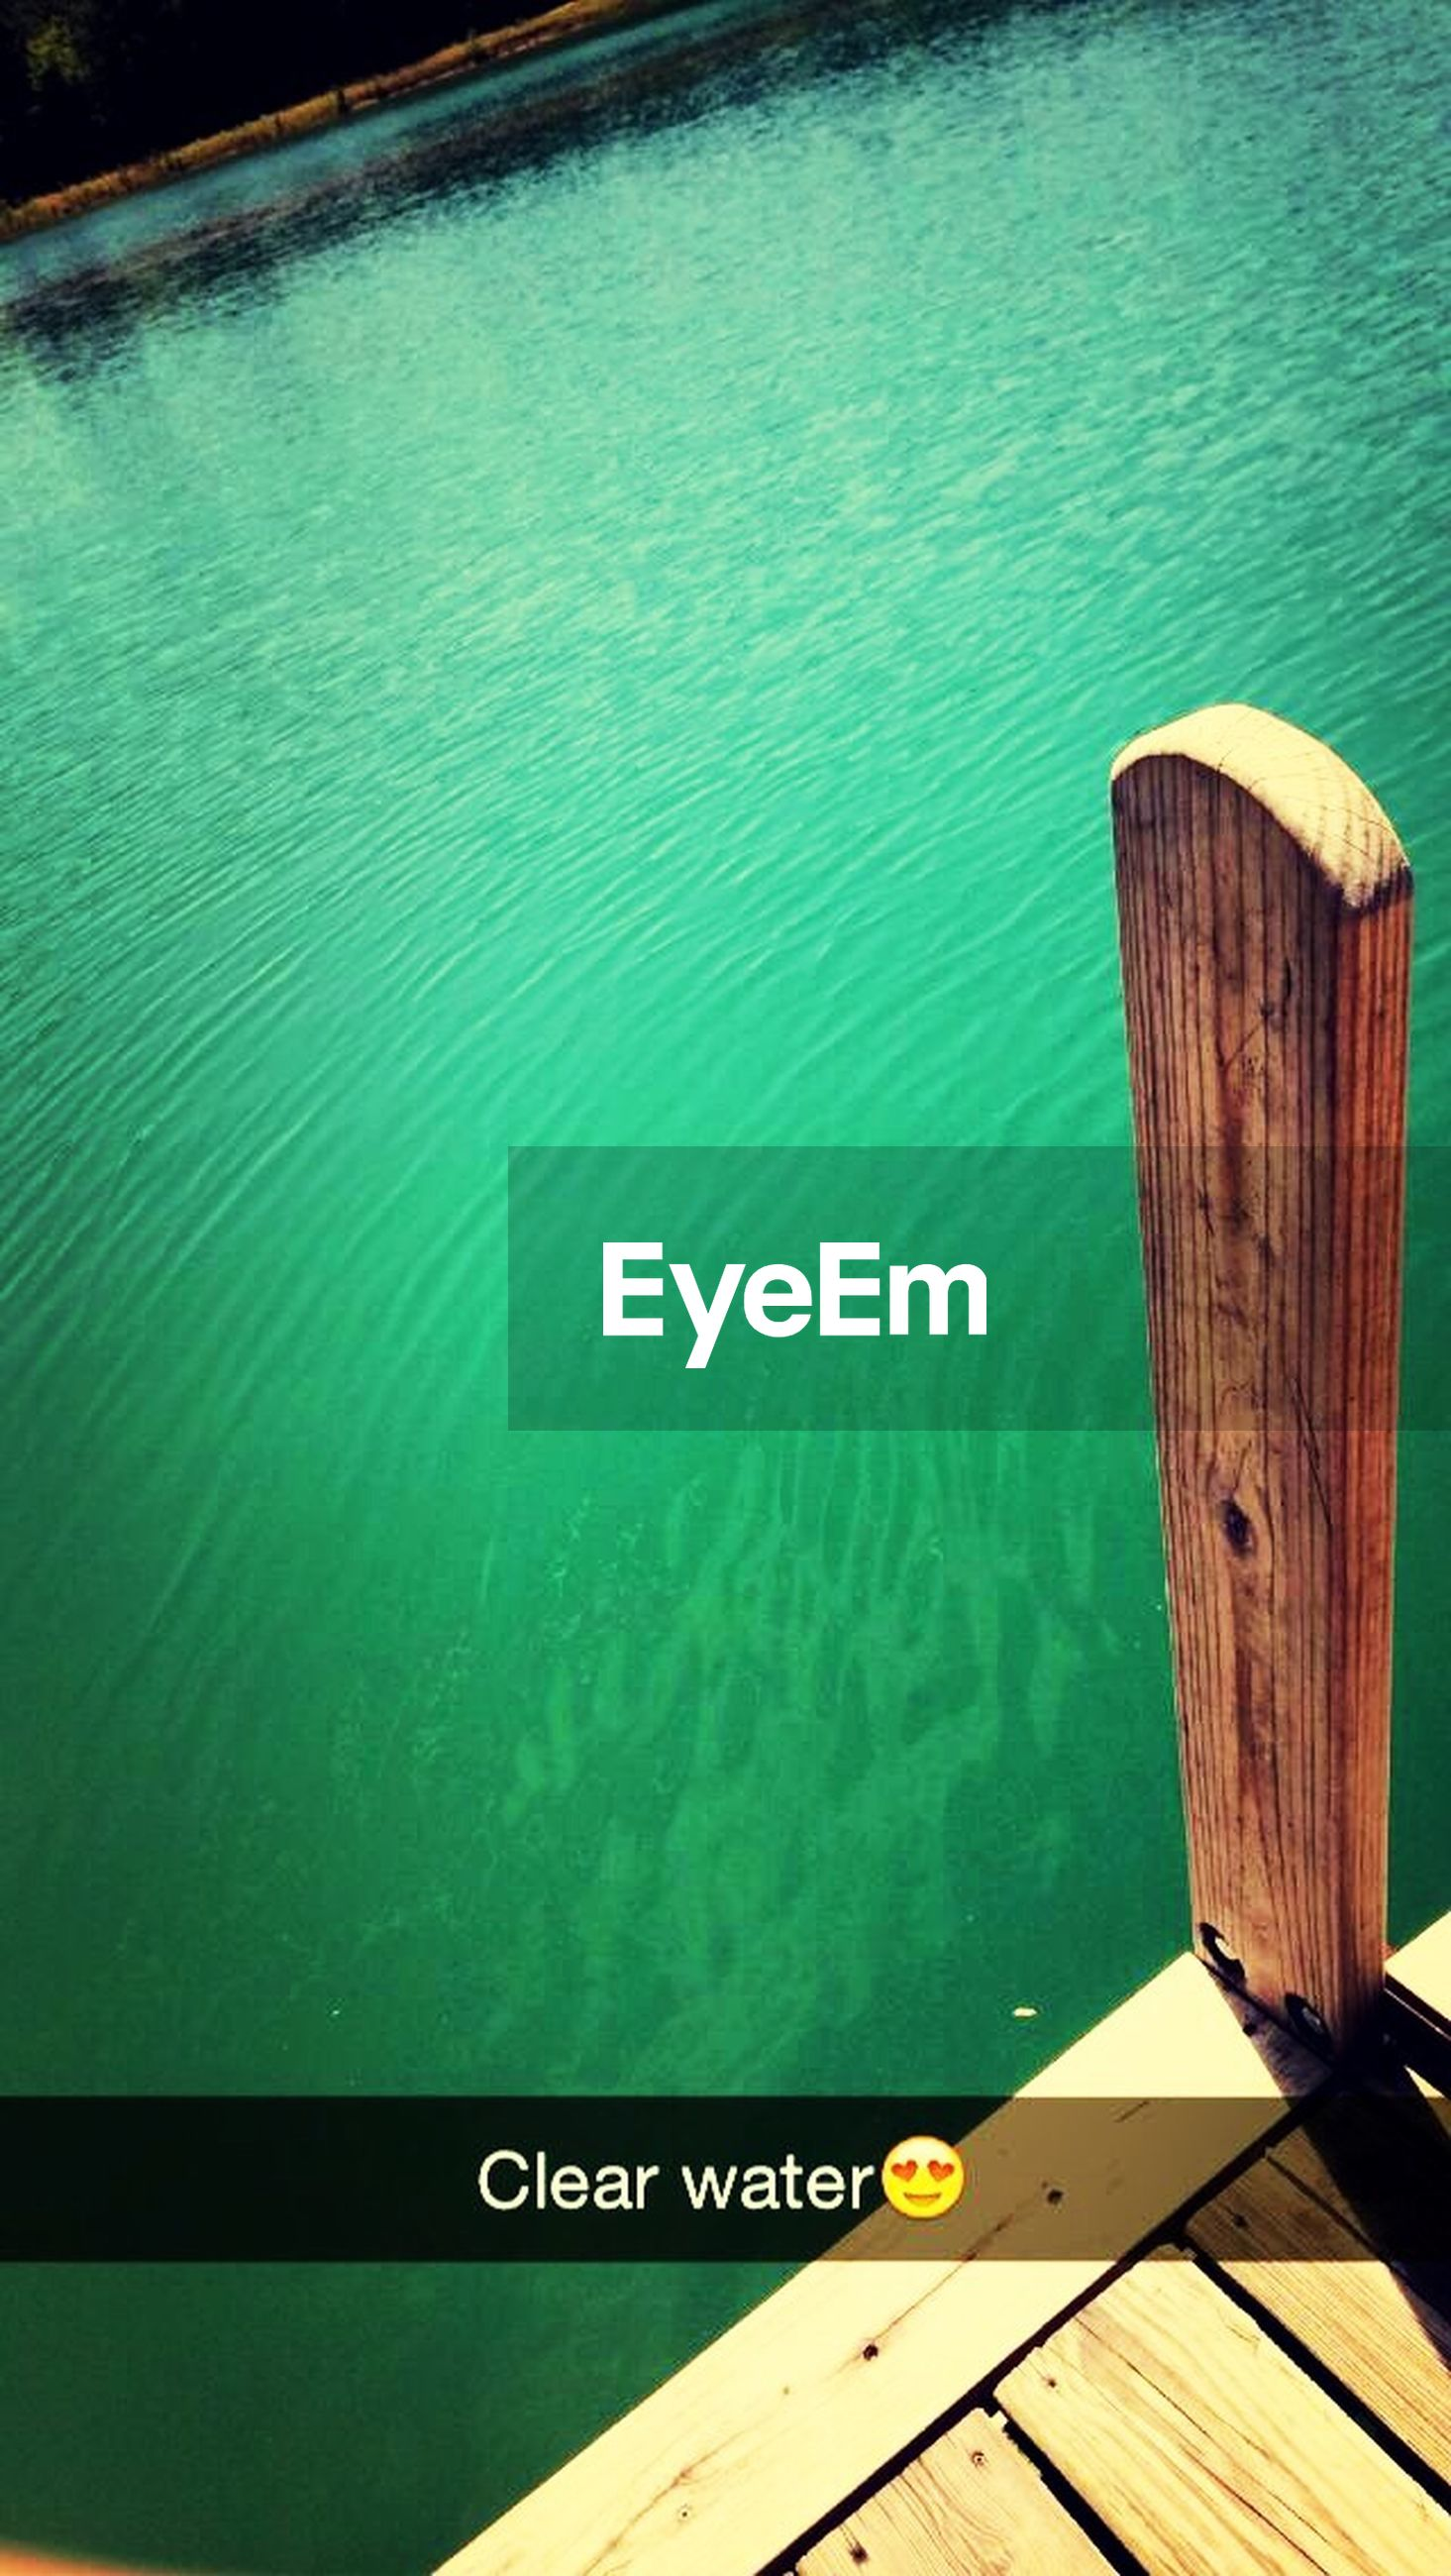 water, wood - material, blue, lake, high angle view, rippled, wooden, wood, swimming pool, pier, plank, reflection, communication, outdoors, no people, nature, text, day, tranquility, river